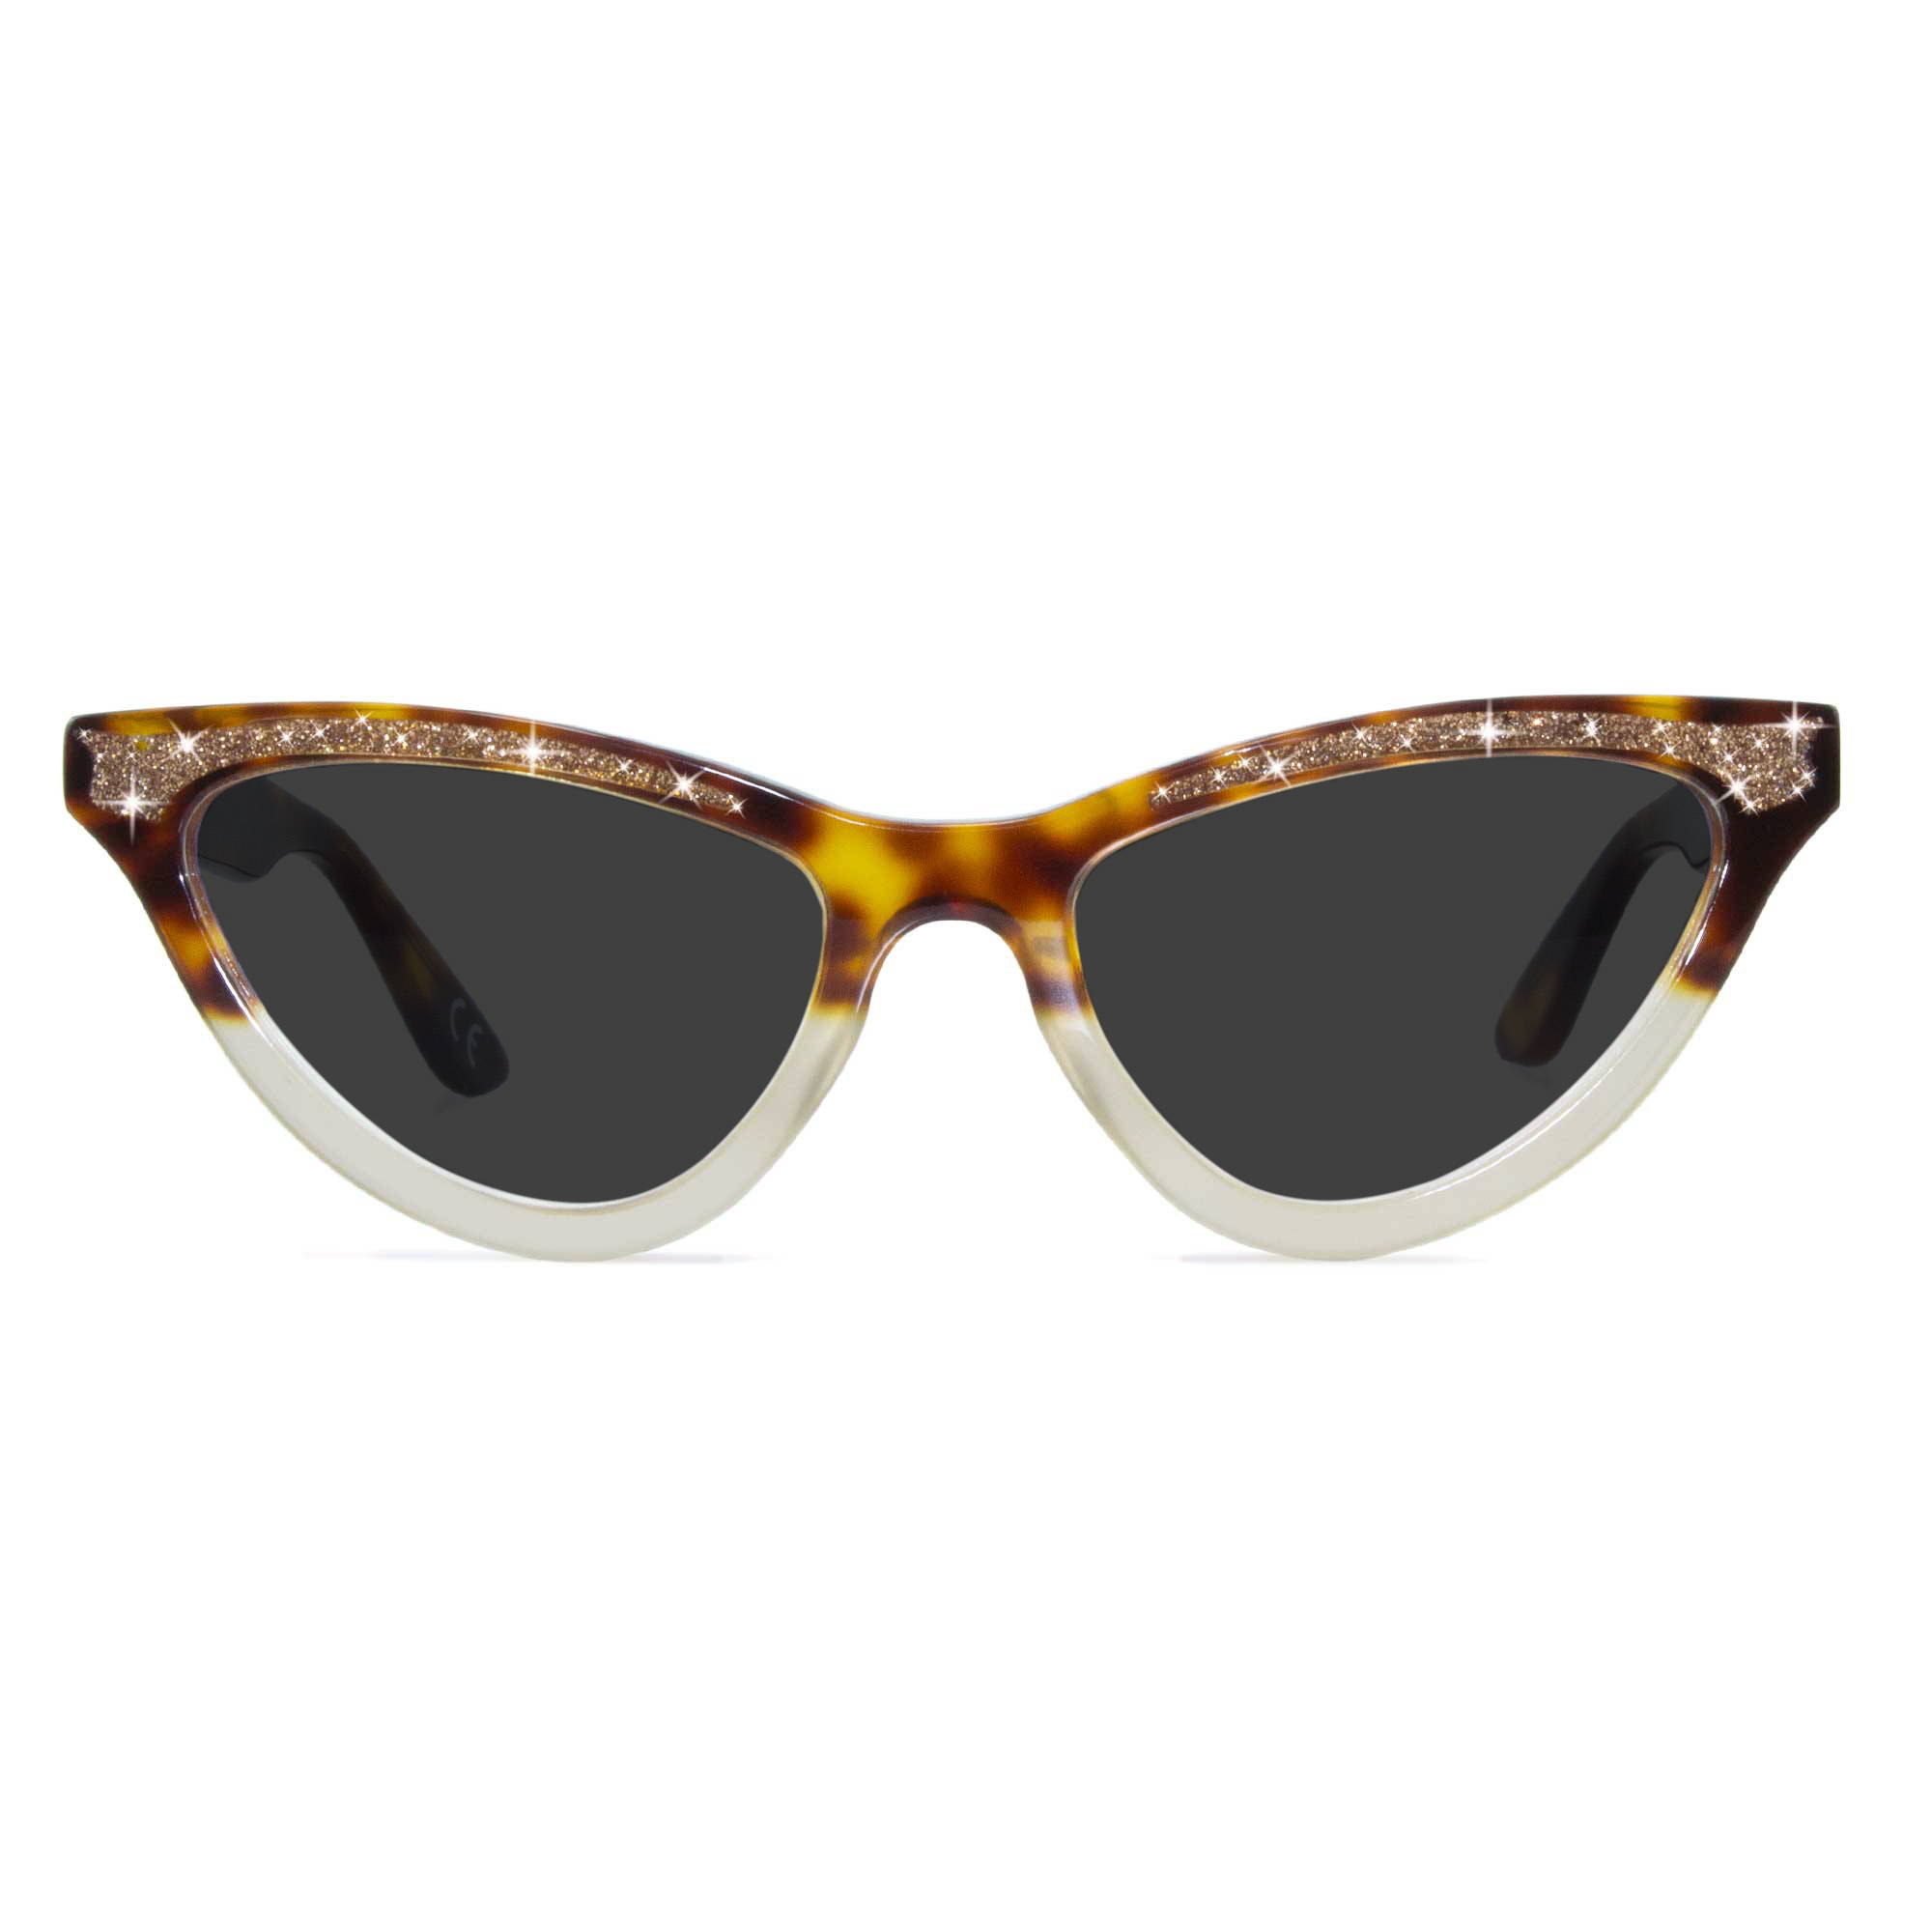 Joiuss maryloo tortoiseshell cat eye sunglasses